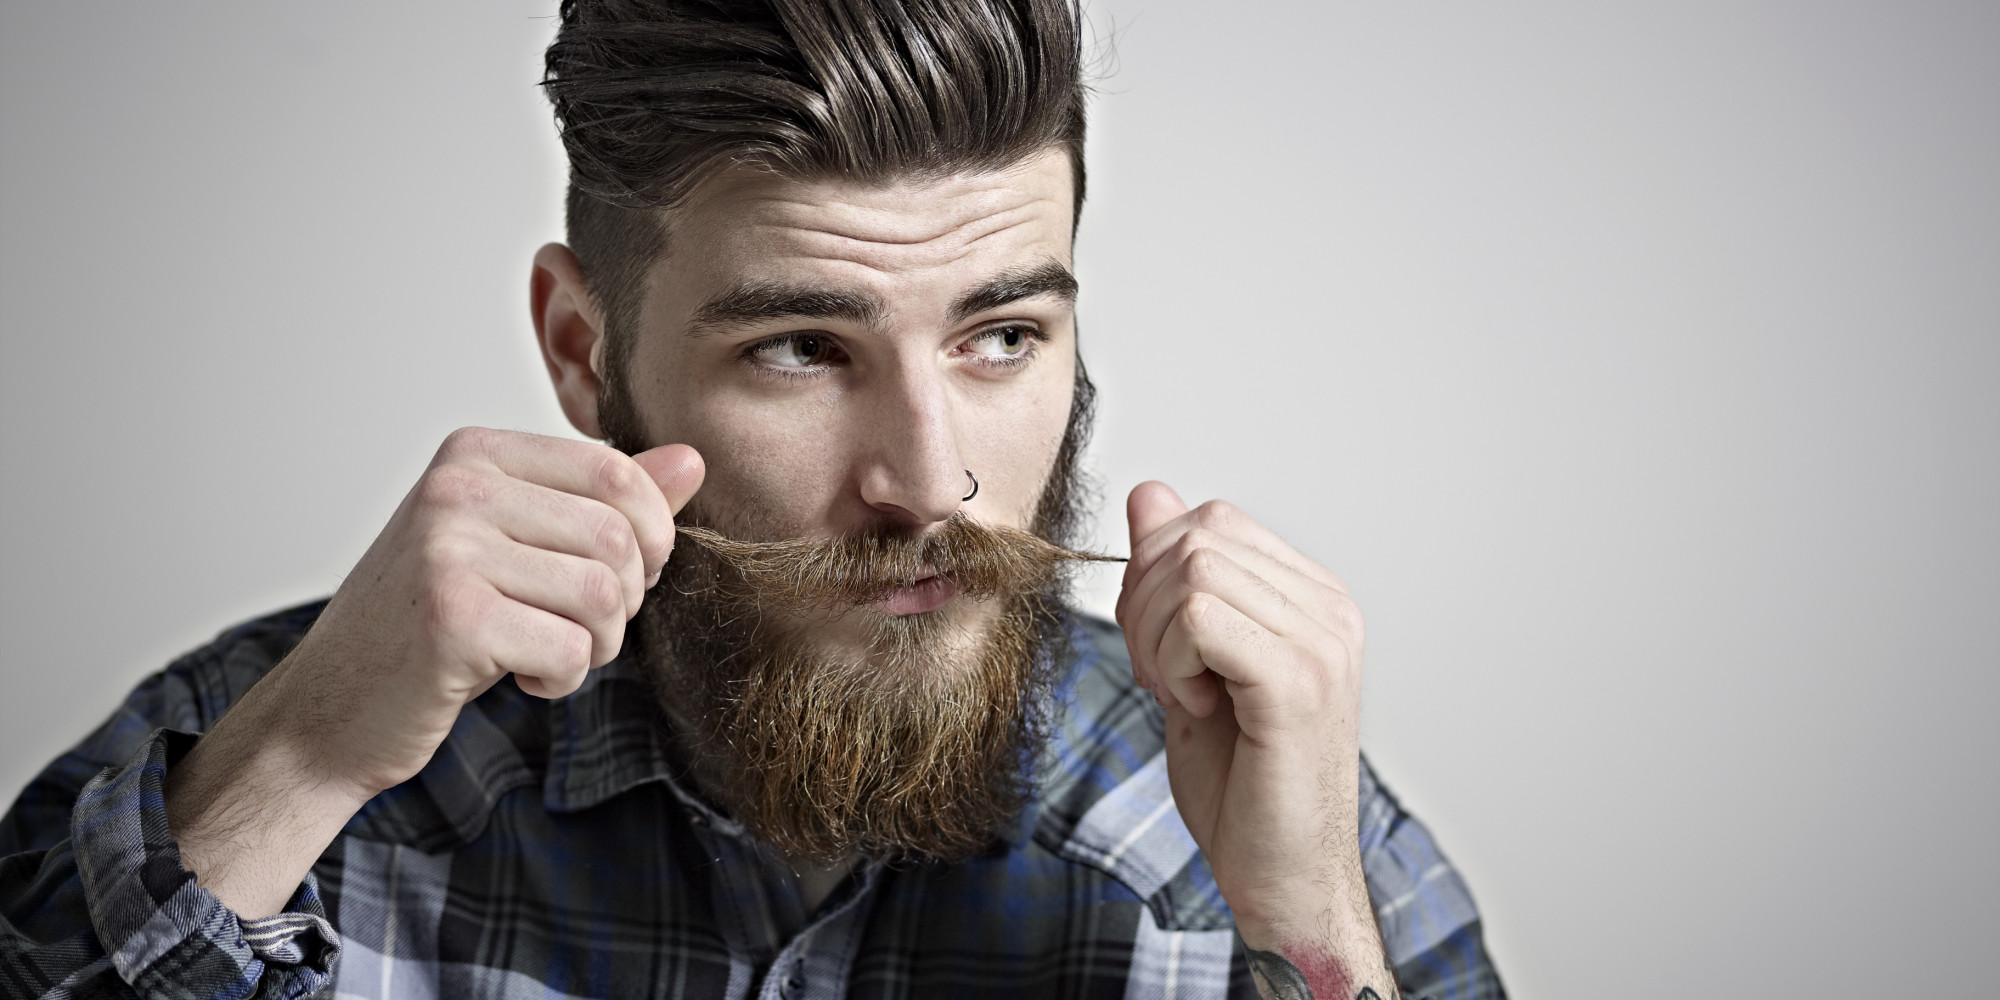 Coiffure Hipster 2018 Your Hipster Beard May Be Hindering Your Career According